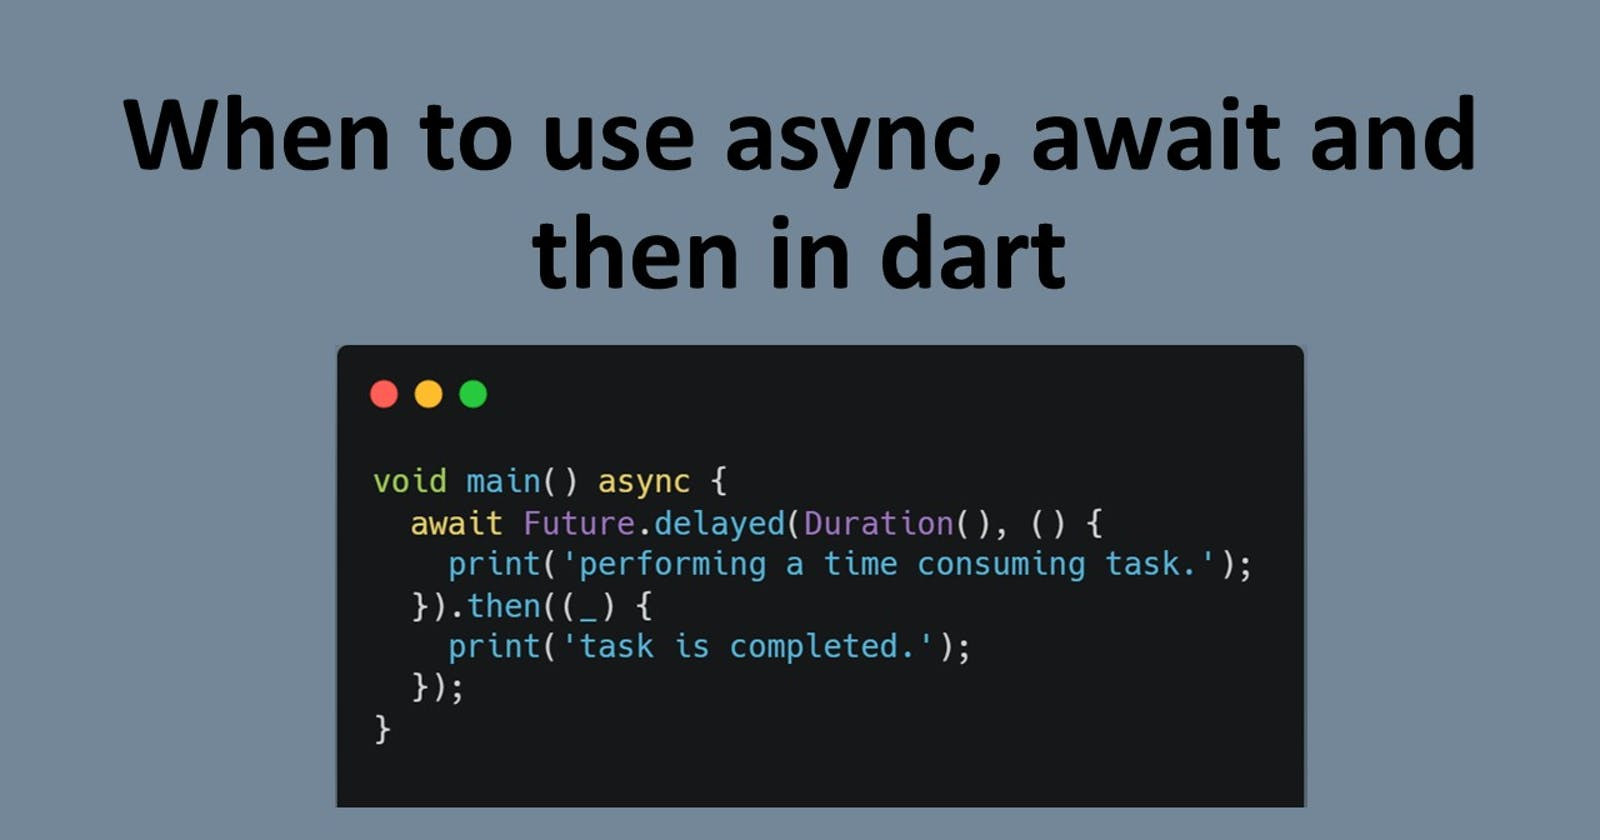 Future in dart: When to use async, await, and then